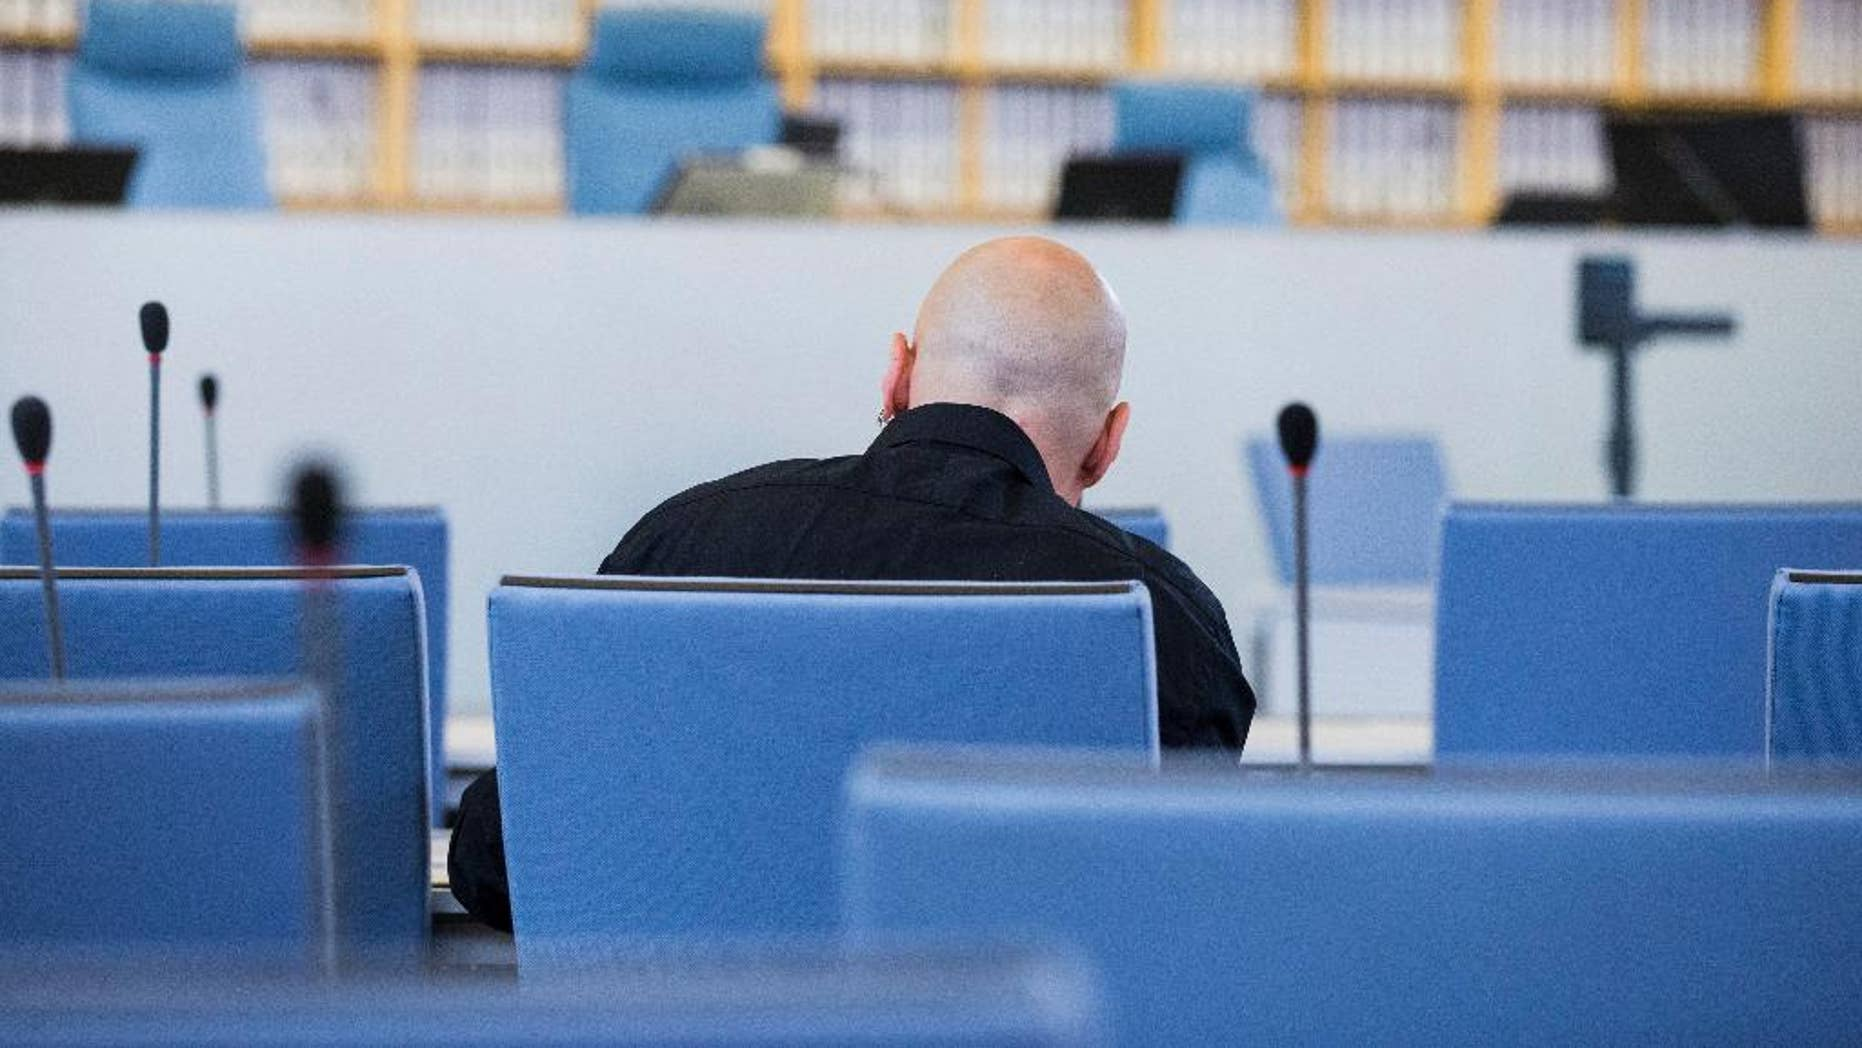 FILE - In this June 22, 2016 file picture accused Frank S. sits in a courtroom of the higher regional court in Duesseldorf, Germany.  A German federal court has rejected an appeal Monday Jan. 9, 2017 by a far-right extremist sentenced to 14 years in prison for the attempted murder of a politician who is now Cologne's mayor. The defendant, identified only as Frank S. in line with German privacy rules, was convicted by a Duesseldorf court in July. Henriette Reker, who was in charge  of housing refugees in Cologne at the time, was stabbed in the neck Oct. 17, 2015 as she campaigned.  (Rolf Vennenbernd/dpa via AP, file)